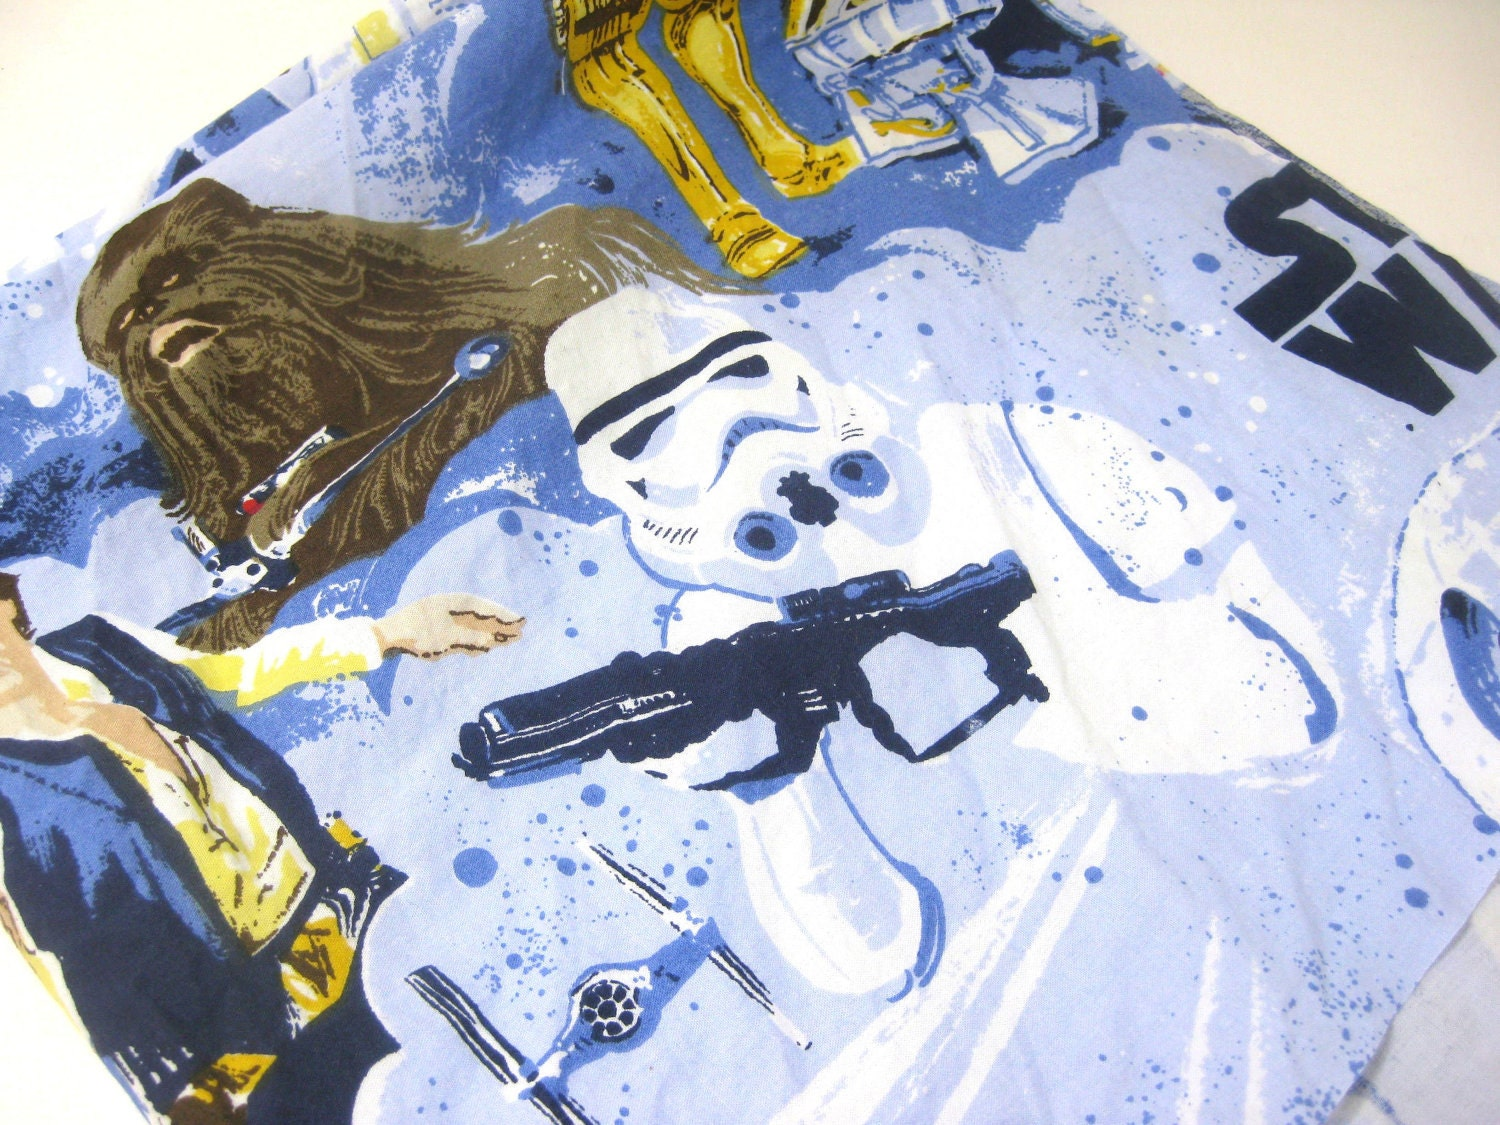 Star wars cotton woven fabric 20 x 20 diaper by for Star wars fabric